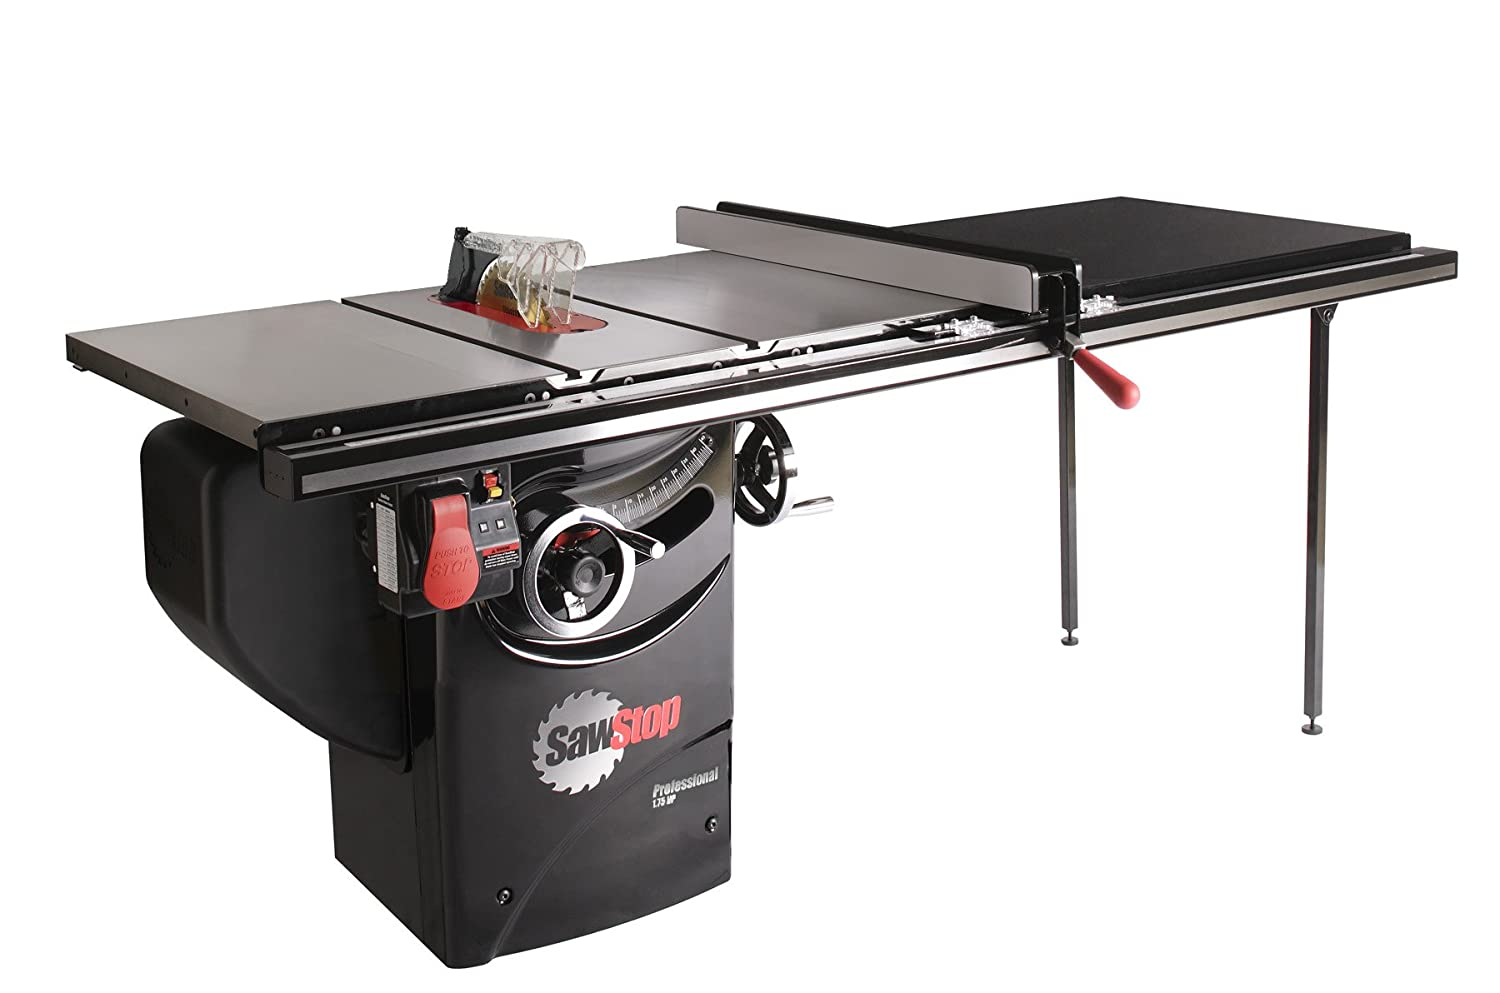 SawStop PCS175-TGP252 1.75-HP Professional Cabinet Saw Assembly with 52-Inch Professional T-Glide Fence System, Rails and Extension Table